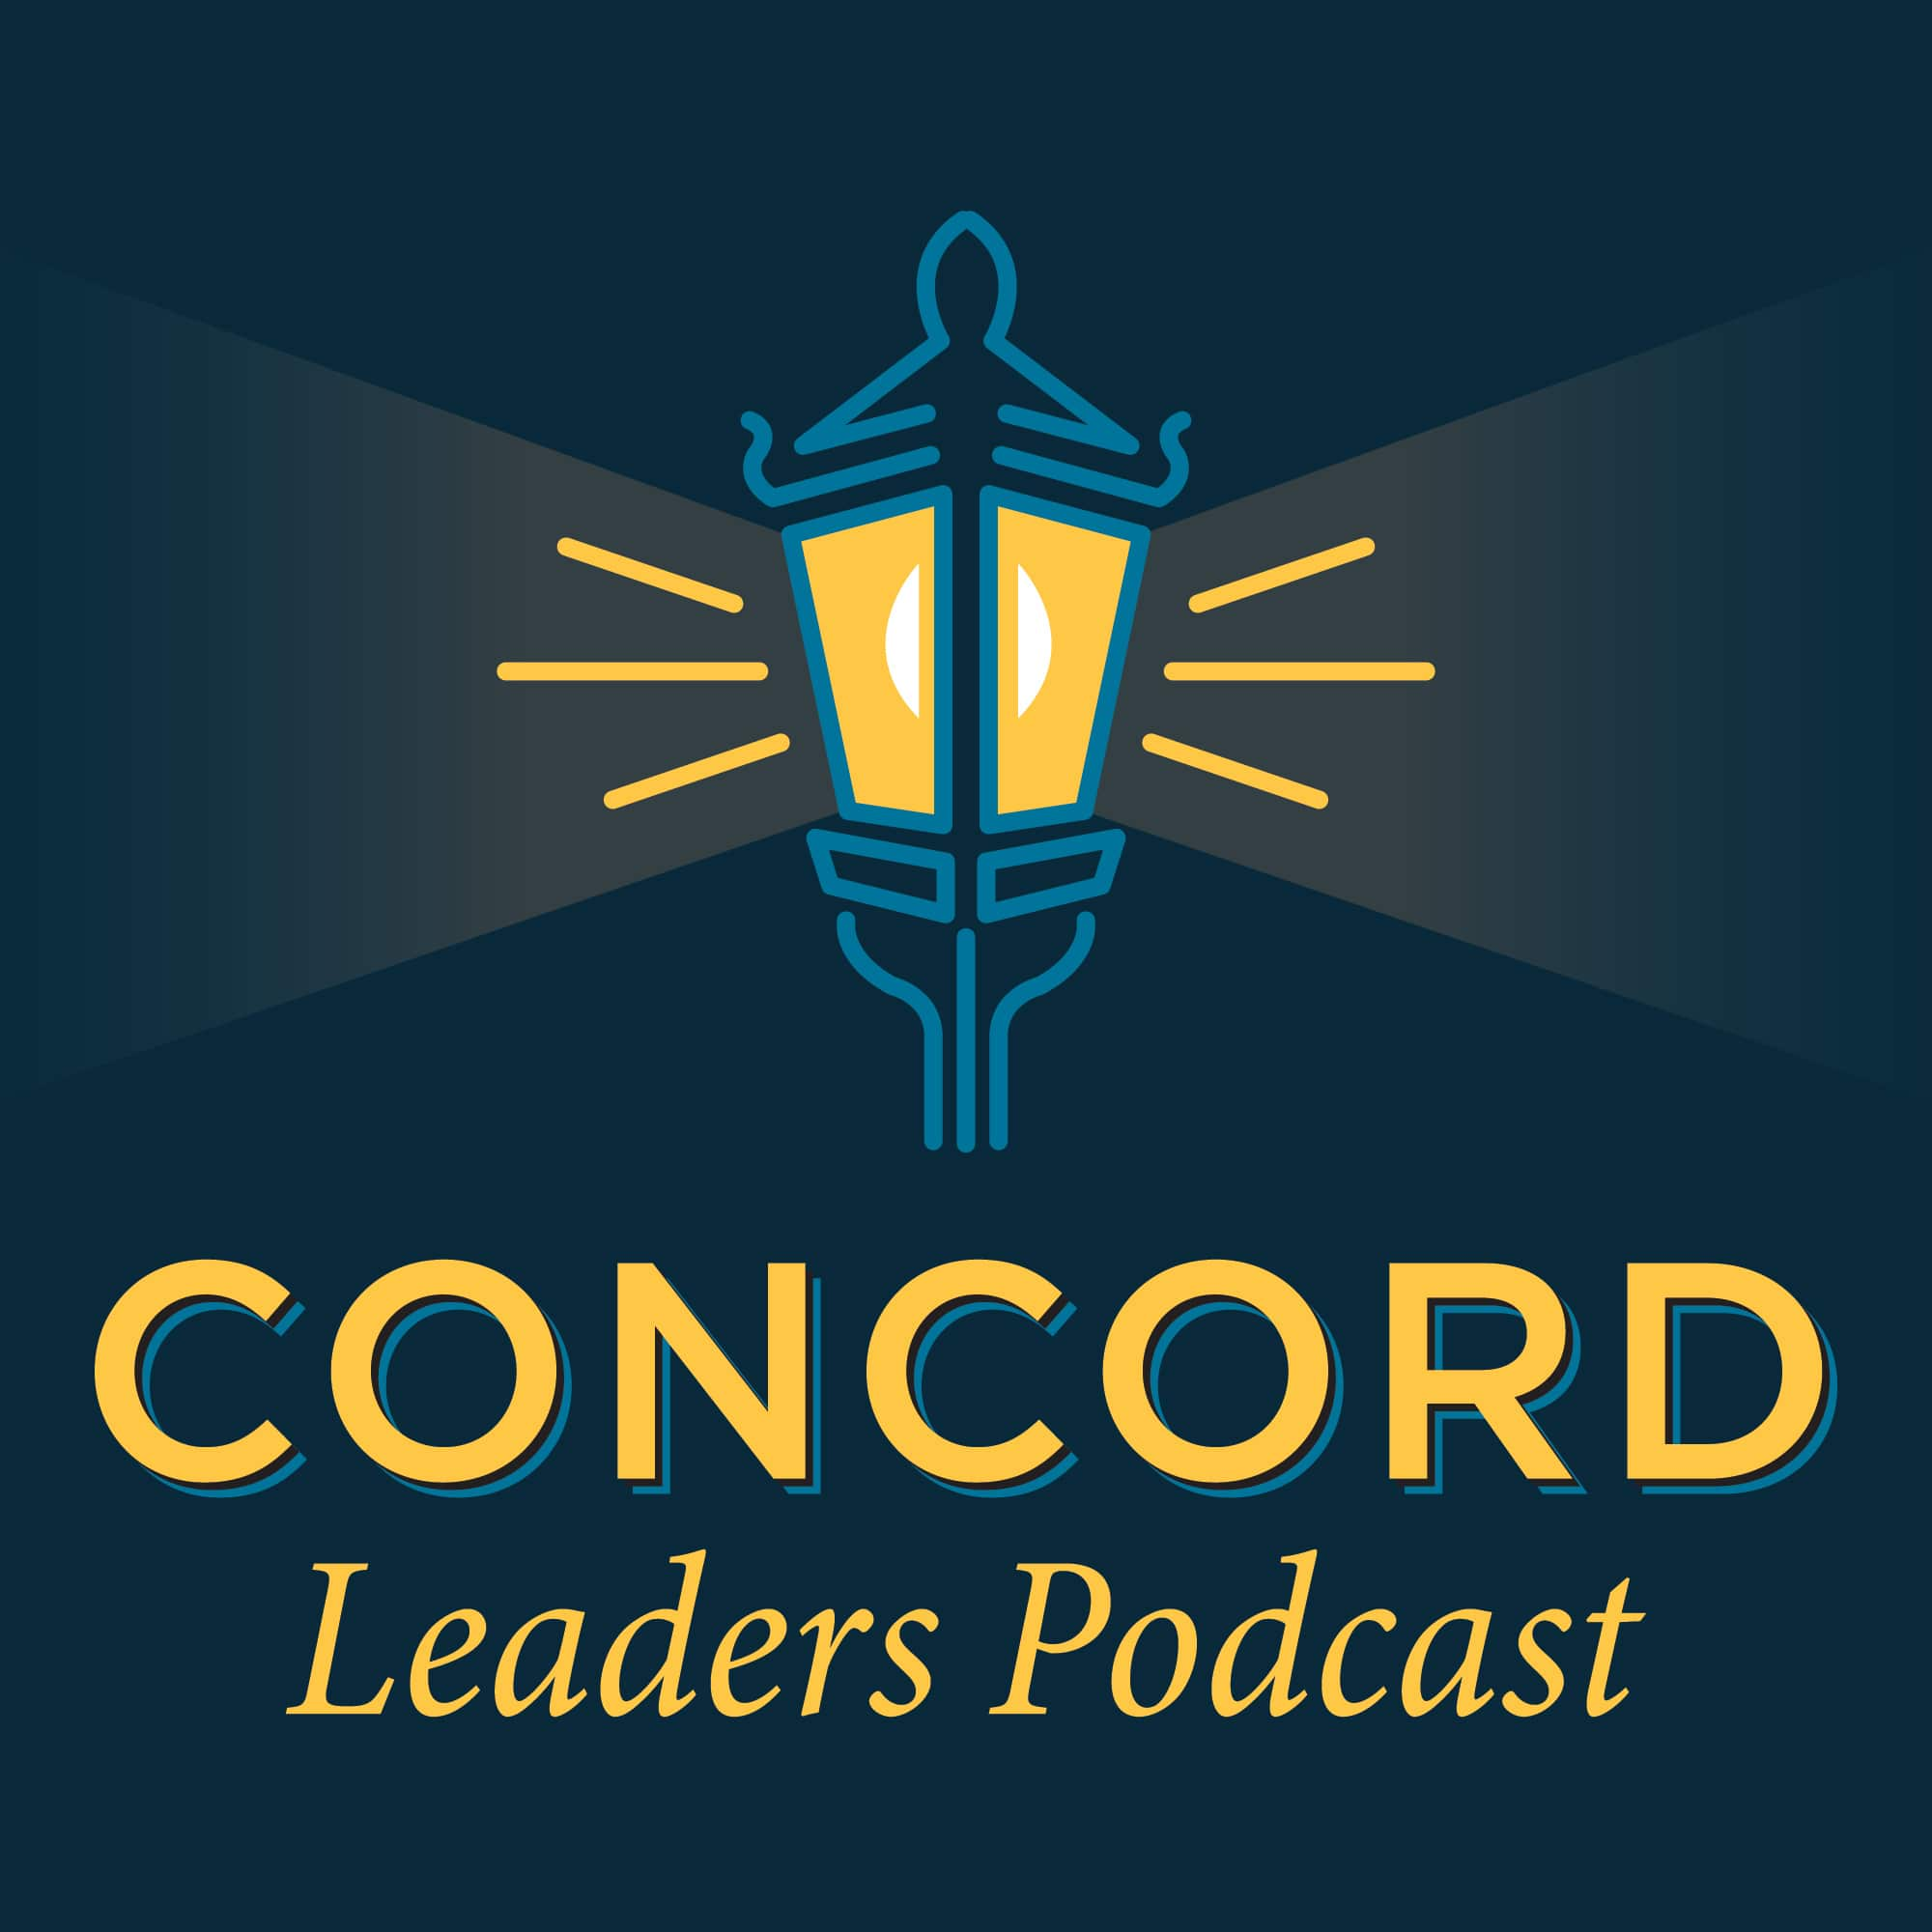 Announcing the Concord Leaders Podcast